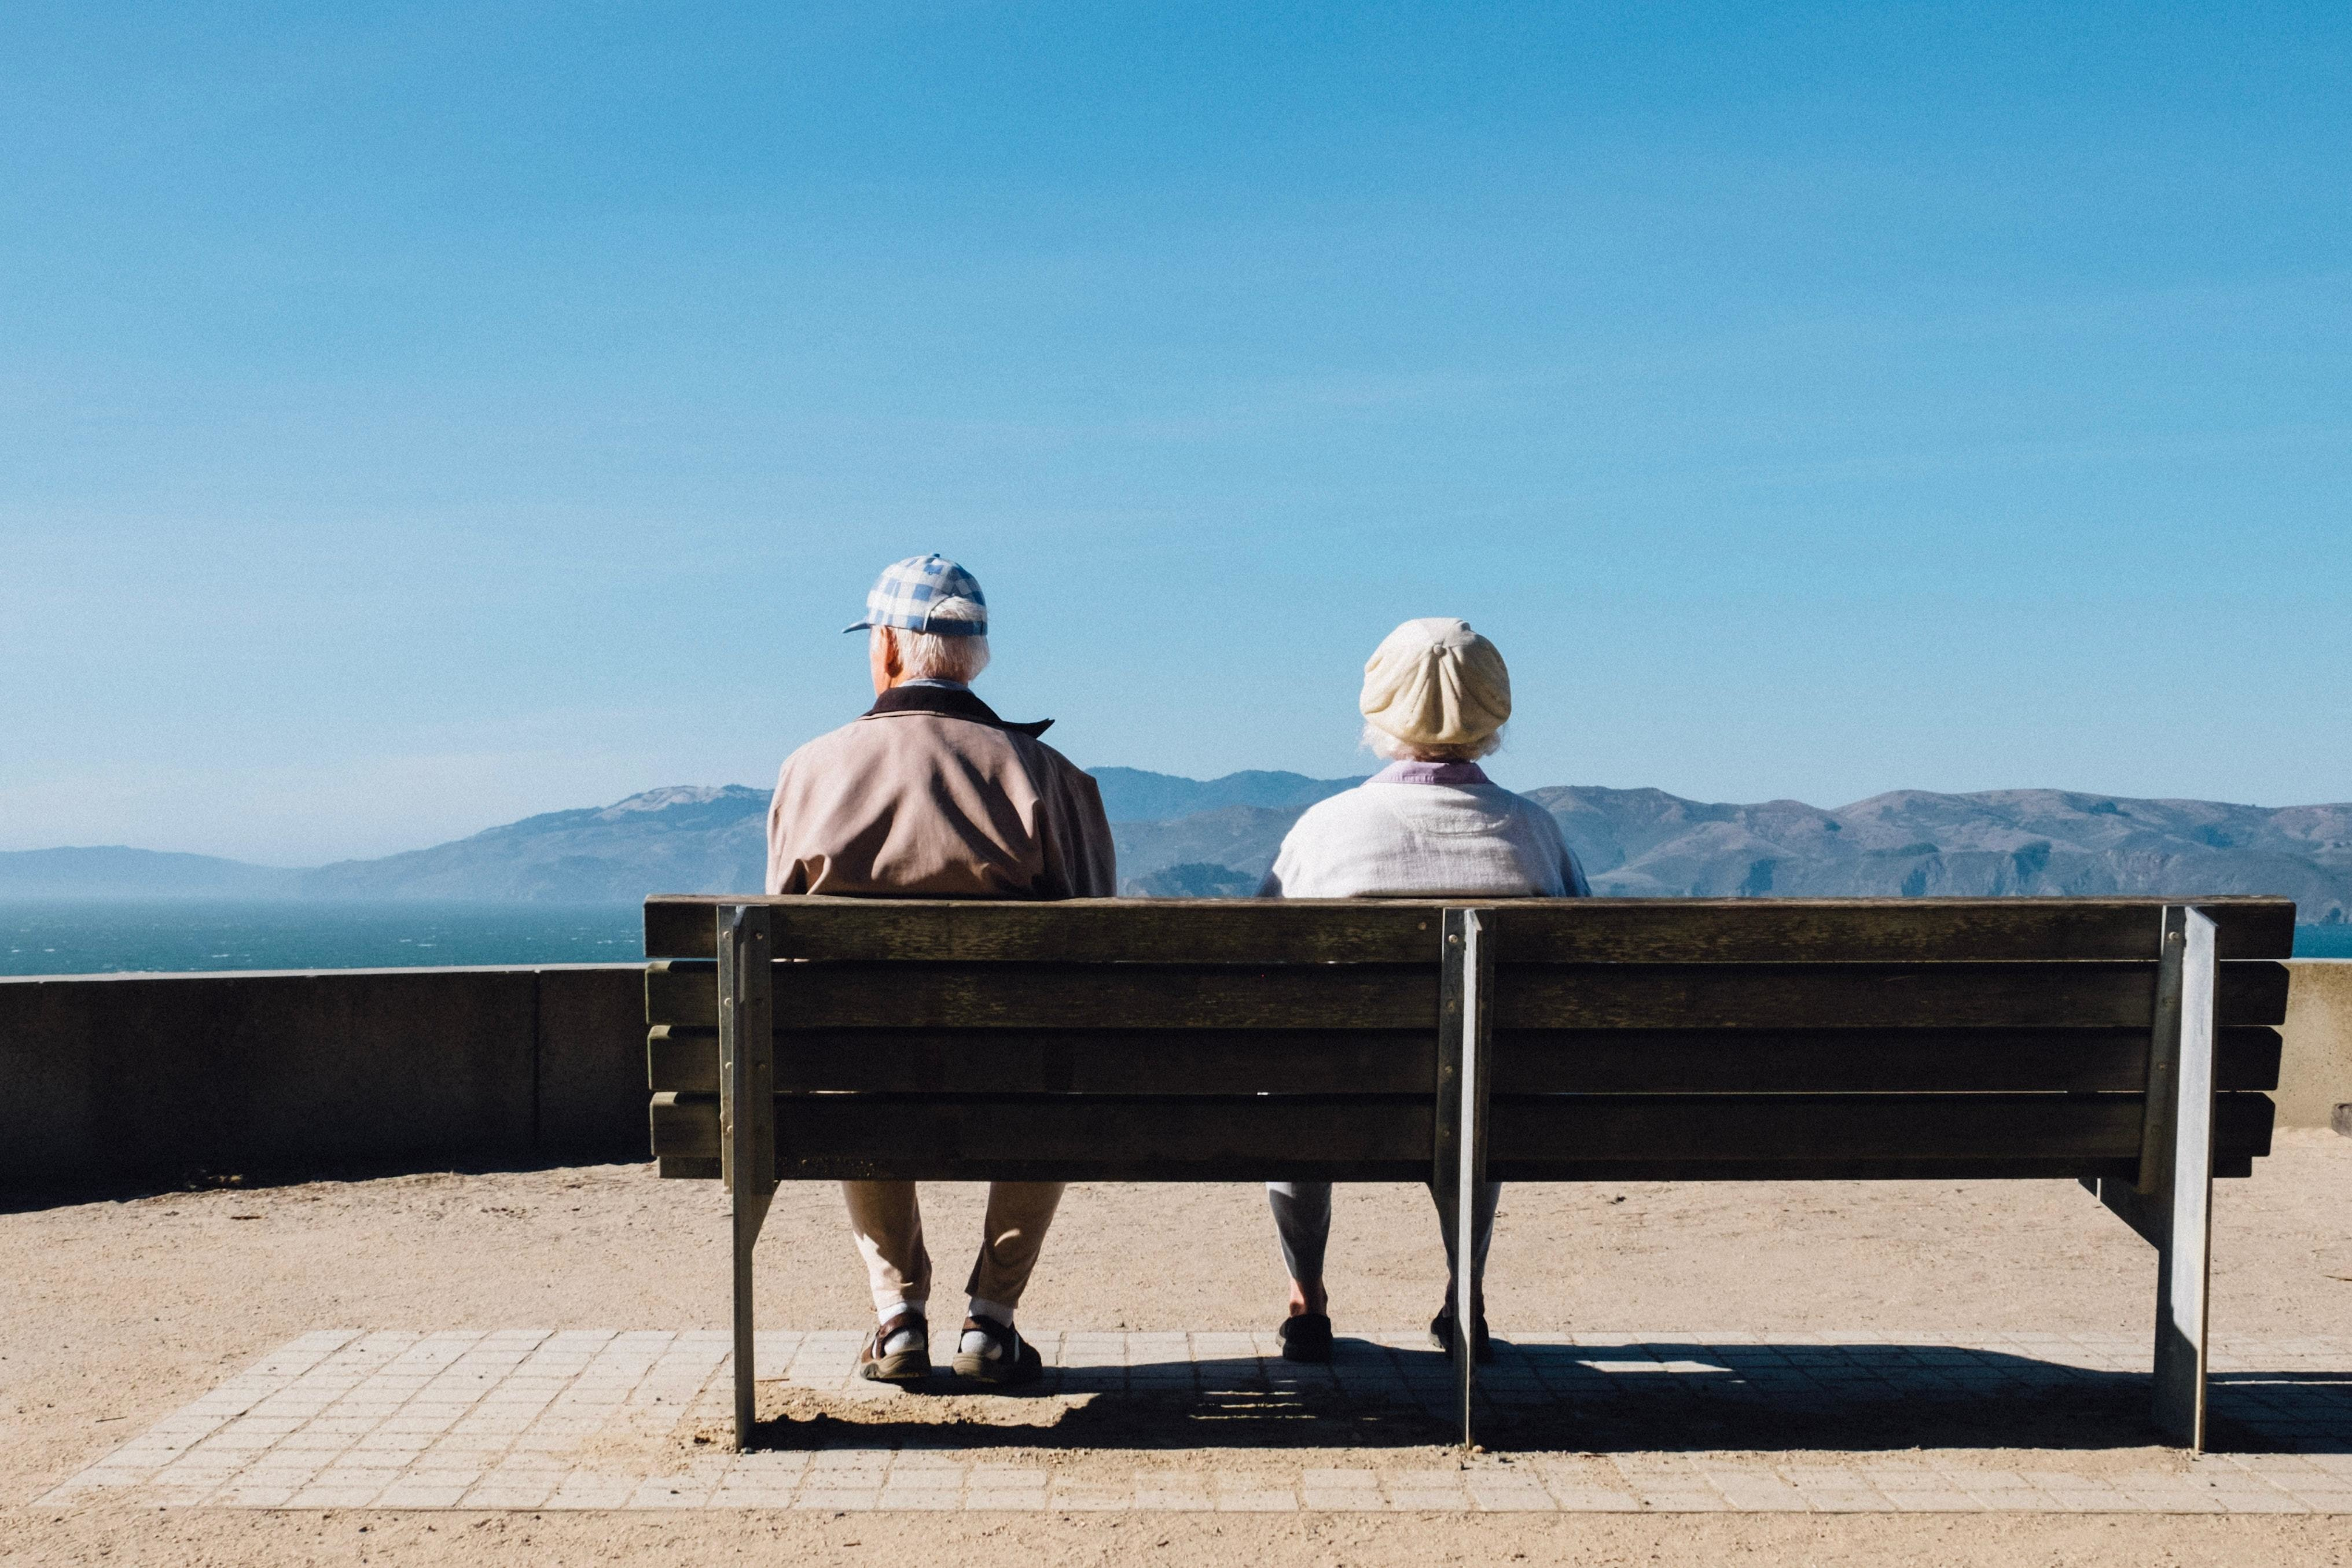 Two elderly people sitting on a bench.